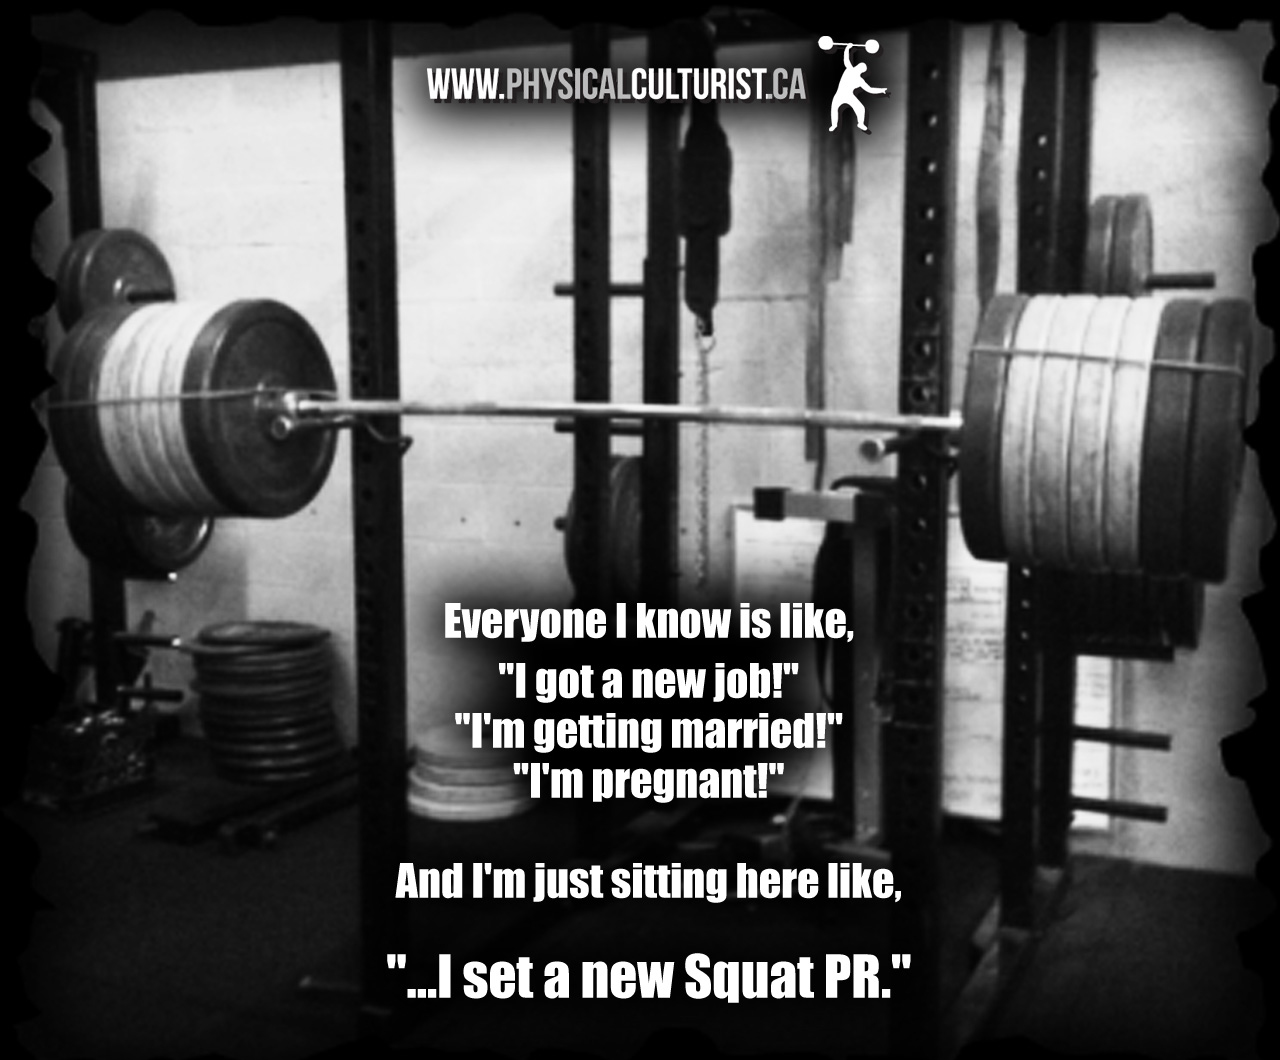 everyone i know is like, i'm got a new job! i'm getting married! i'm pregnant! And I'm just sitting here like, I set a new Squat PR